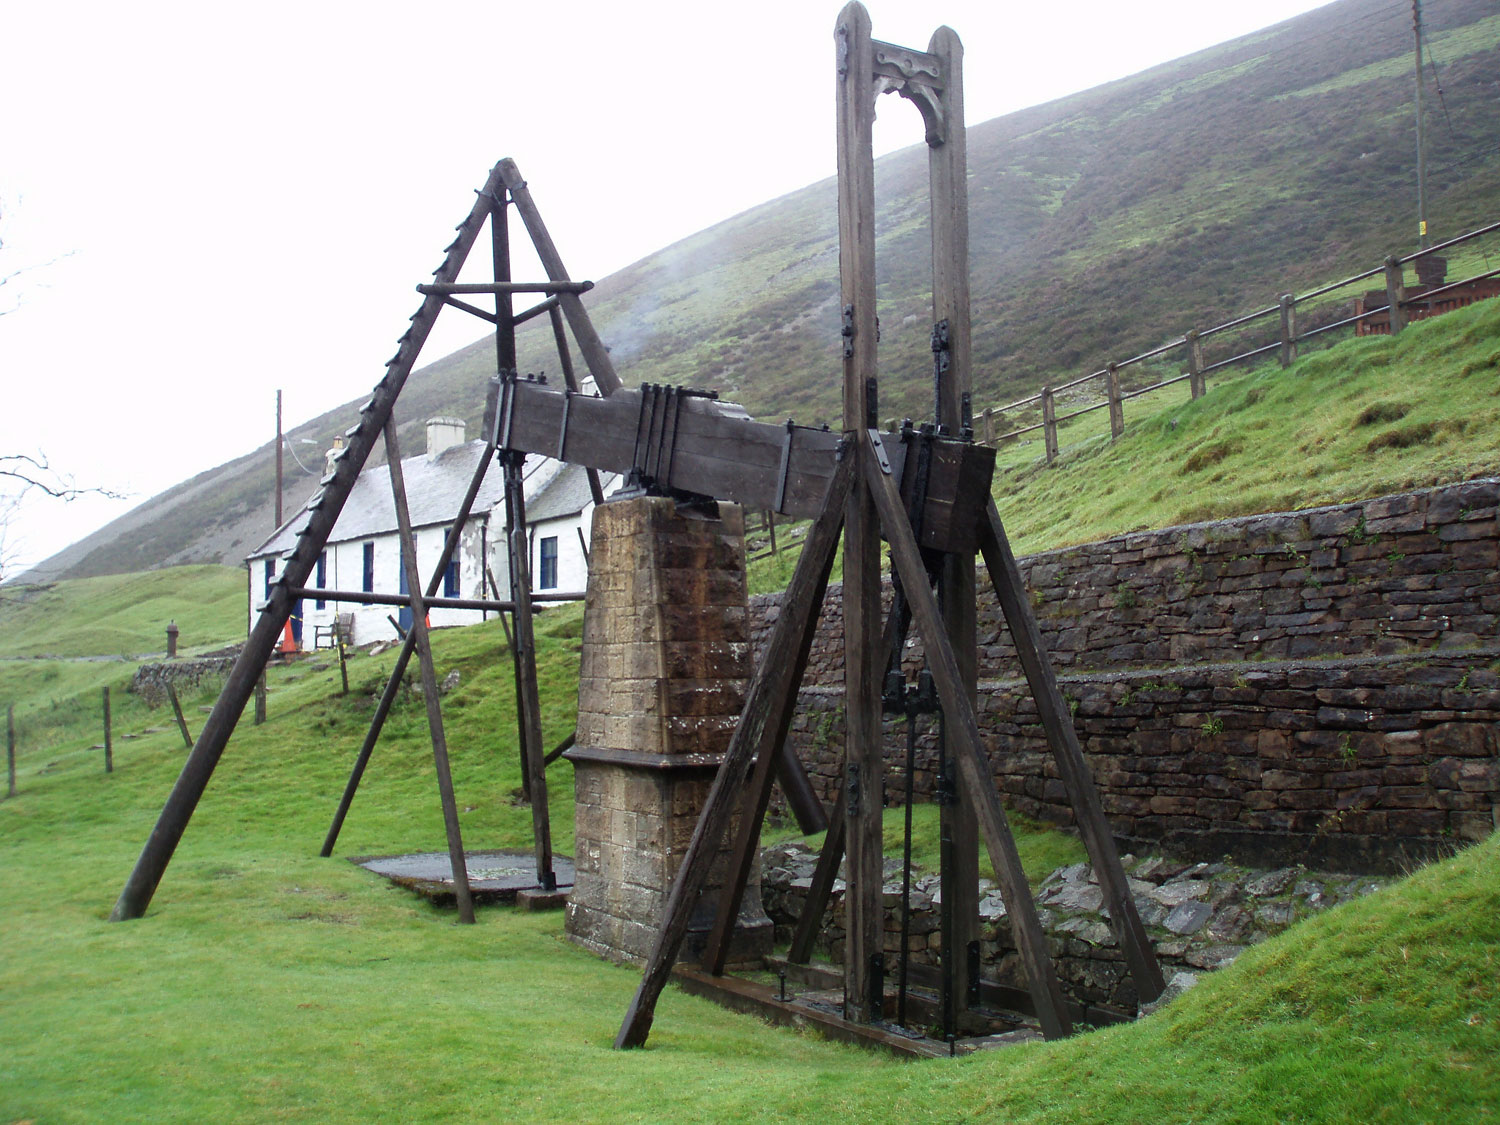 photograph of wooden beam engine in front of small workers cottages